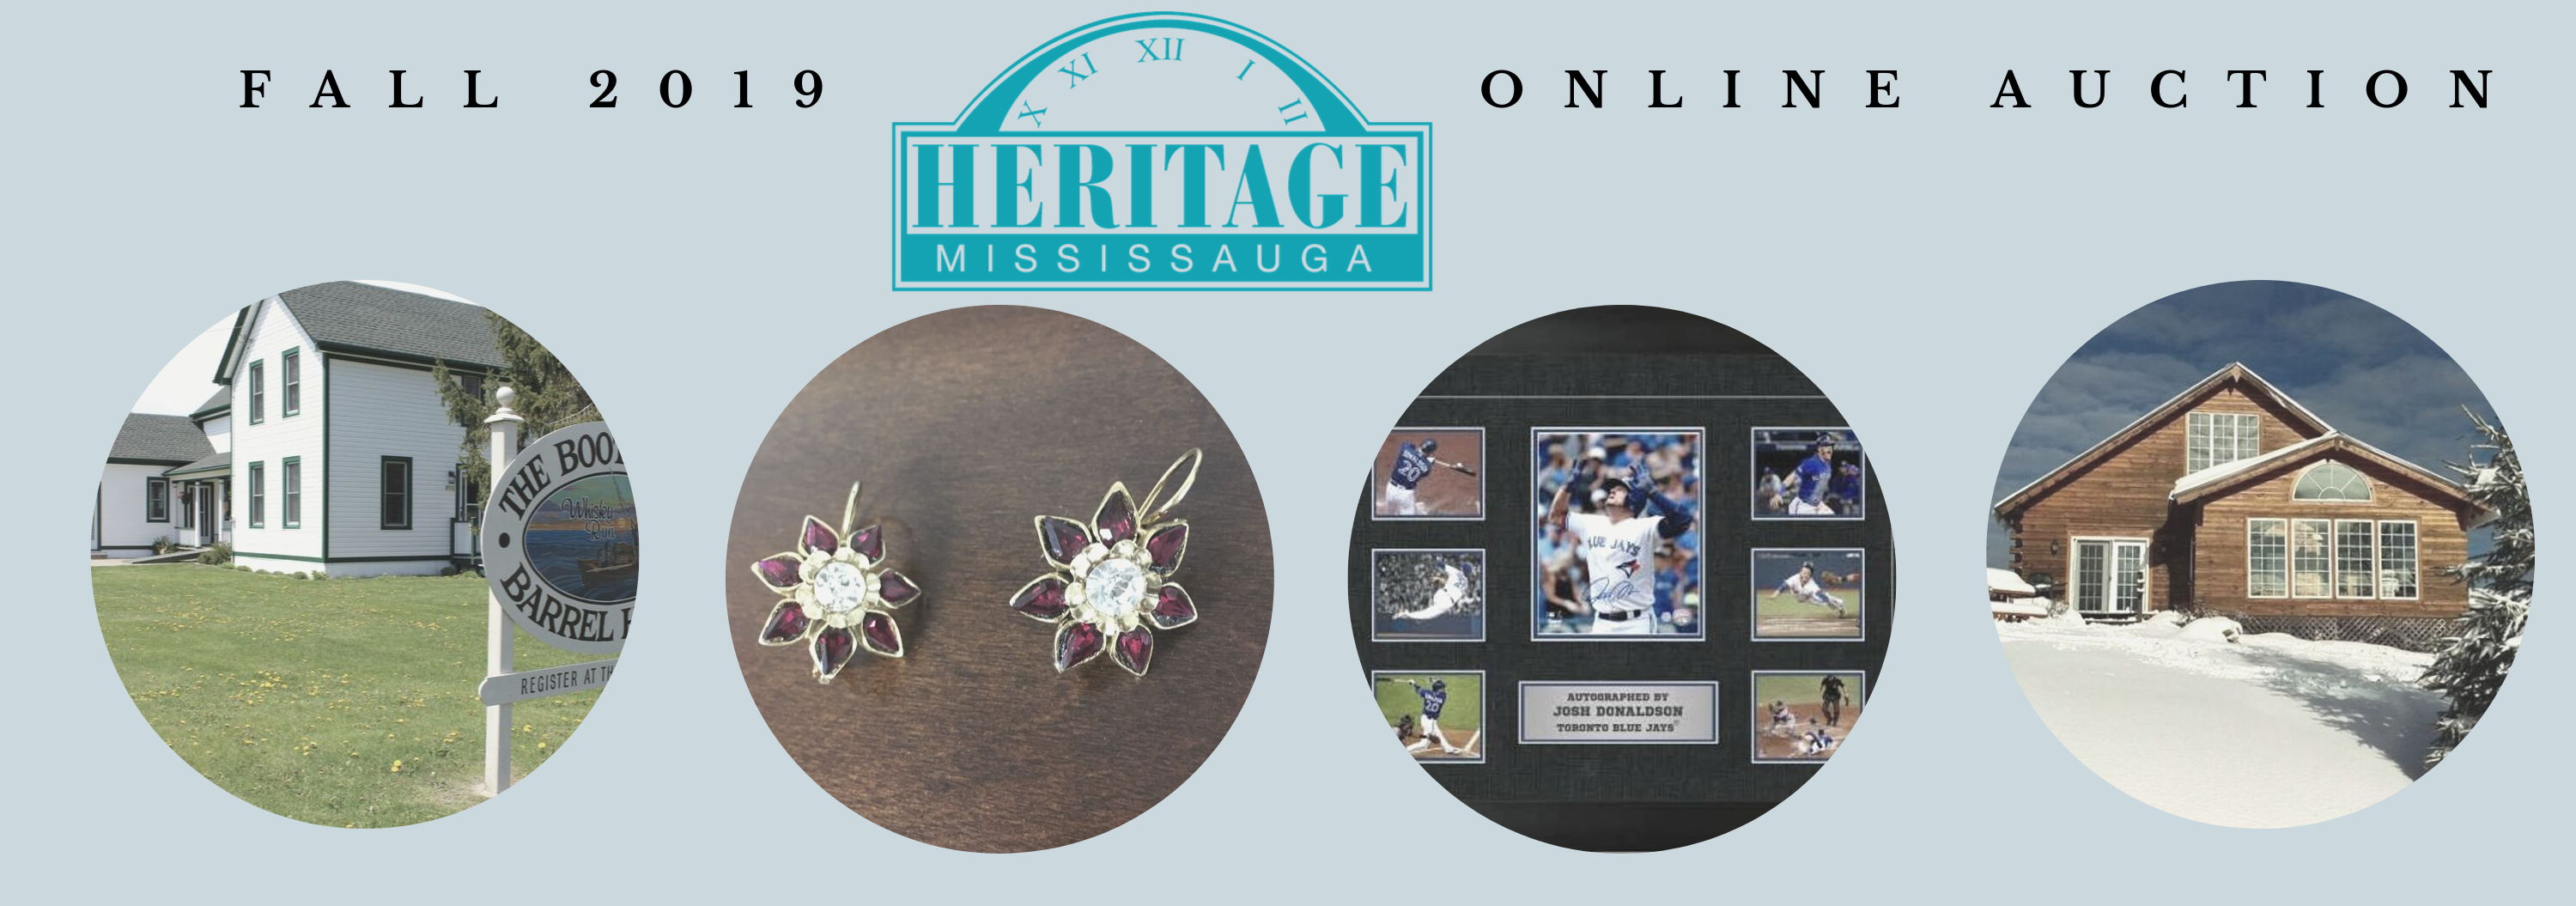 FrontPageOnlineAuction